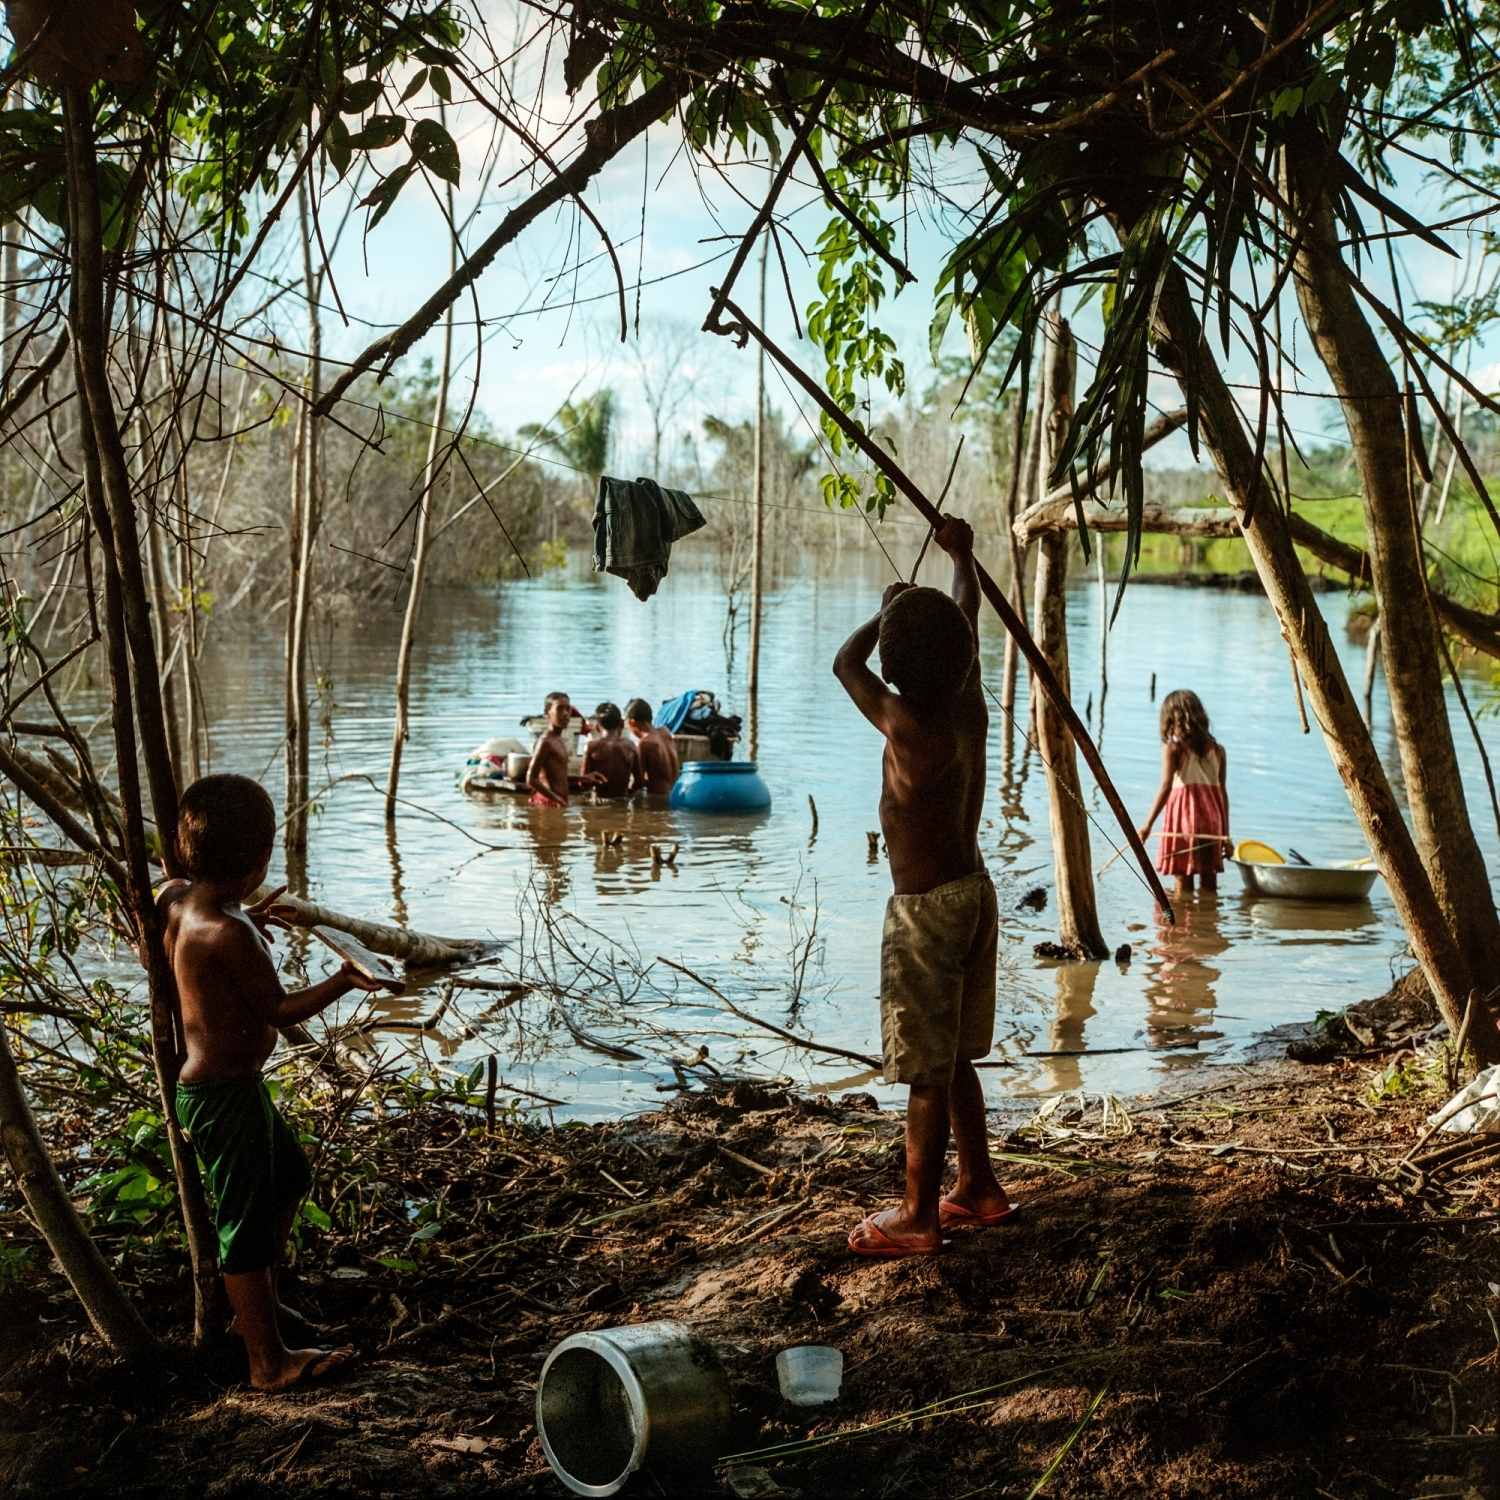 2017. Riberino Children play by the water at a relocation site on the Belo Monte Dam Reservoir.  Riverine families that were displaced from their flooded land have recenlty been returning to life on the water yet face new challenges as the river ecosystem has been transformed.